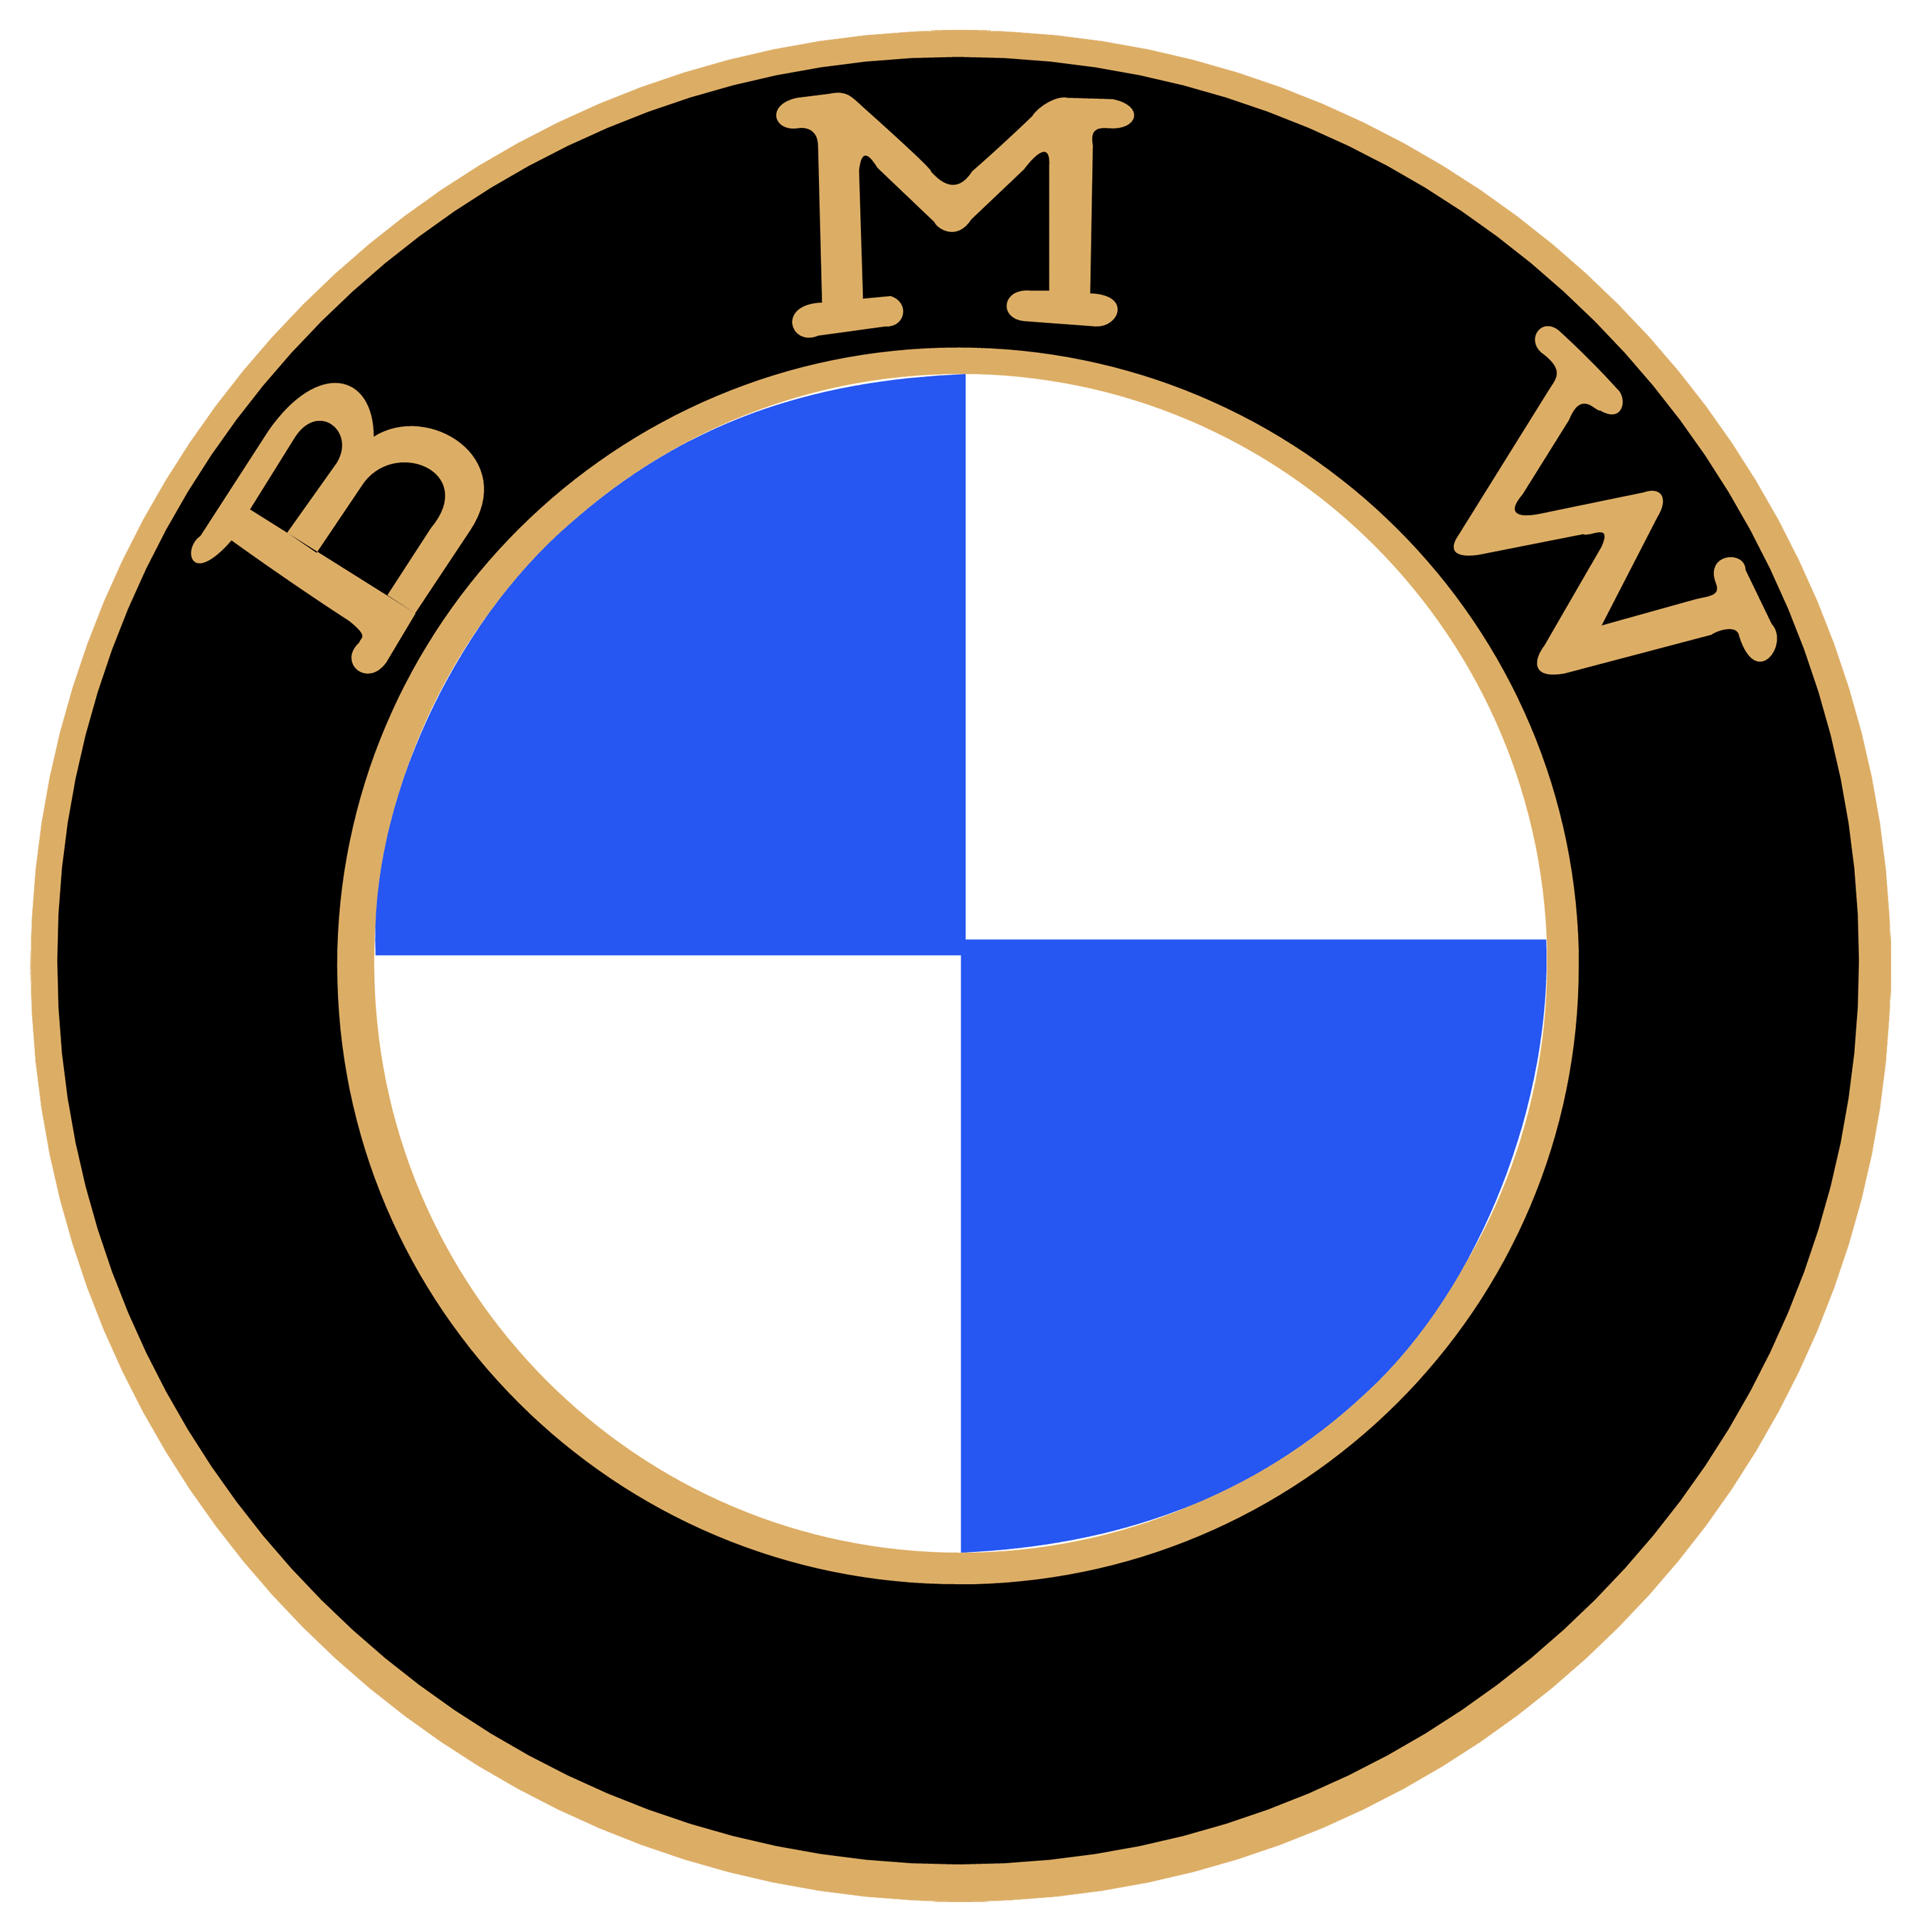 BMW clipart bmw logo Brands Logo: Meaning Motorcycle description